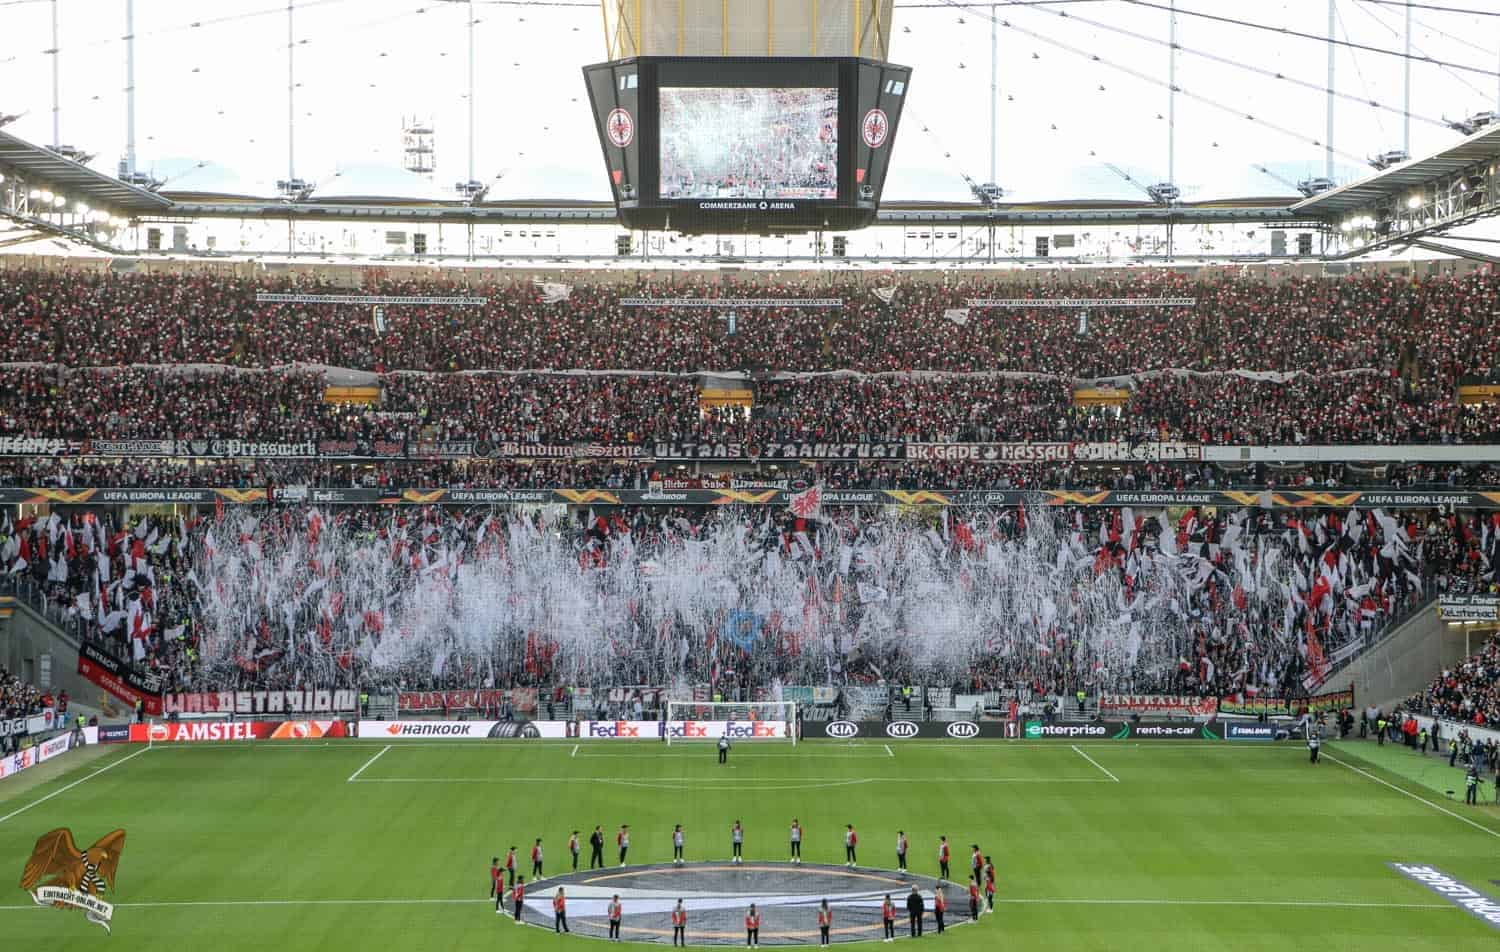 19-20-europaleague-eintracht-frankfurt-arsenal-london-08